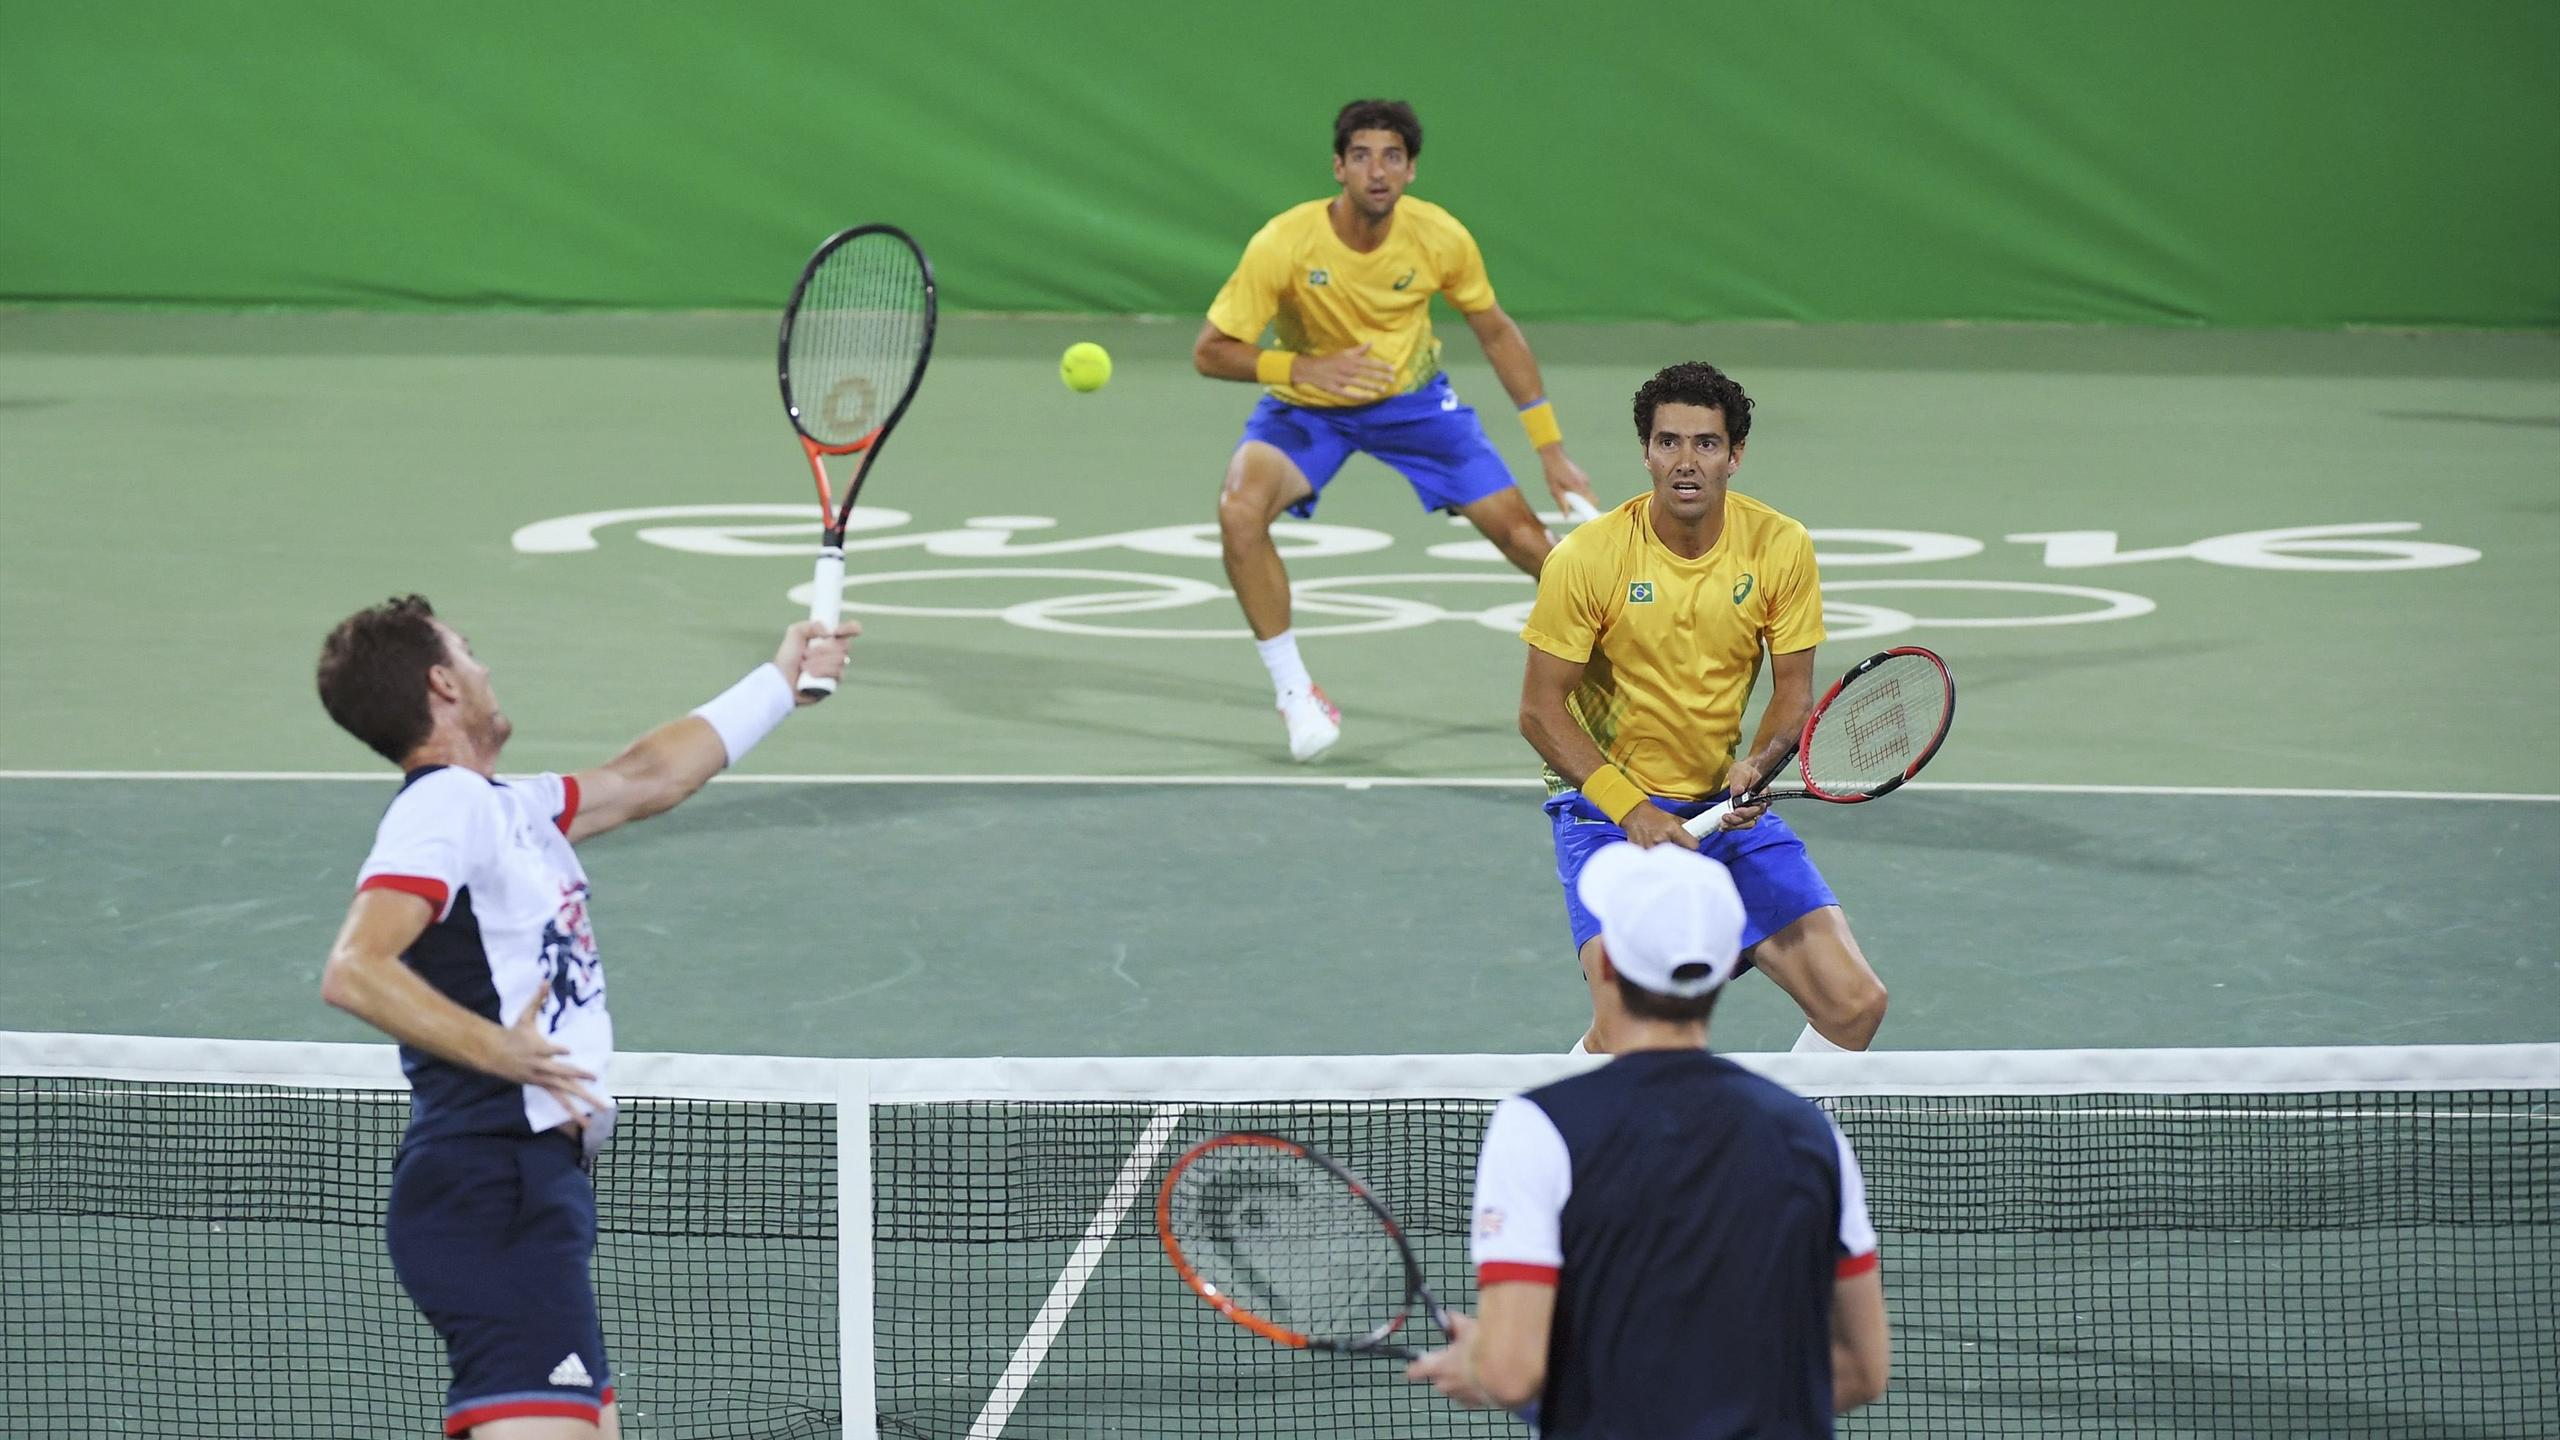 Thomaz Bellucci (BRA) of Brazil and Andre Sa (BRA) of Brazil are seen during their match against Andy Murray (GBR) of United Kingdom and Jamie Murray (GBR) of United Kingdom